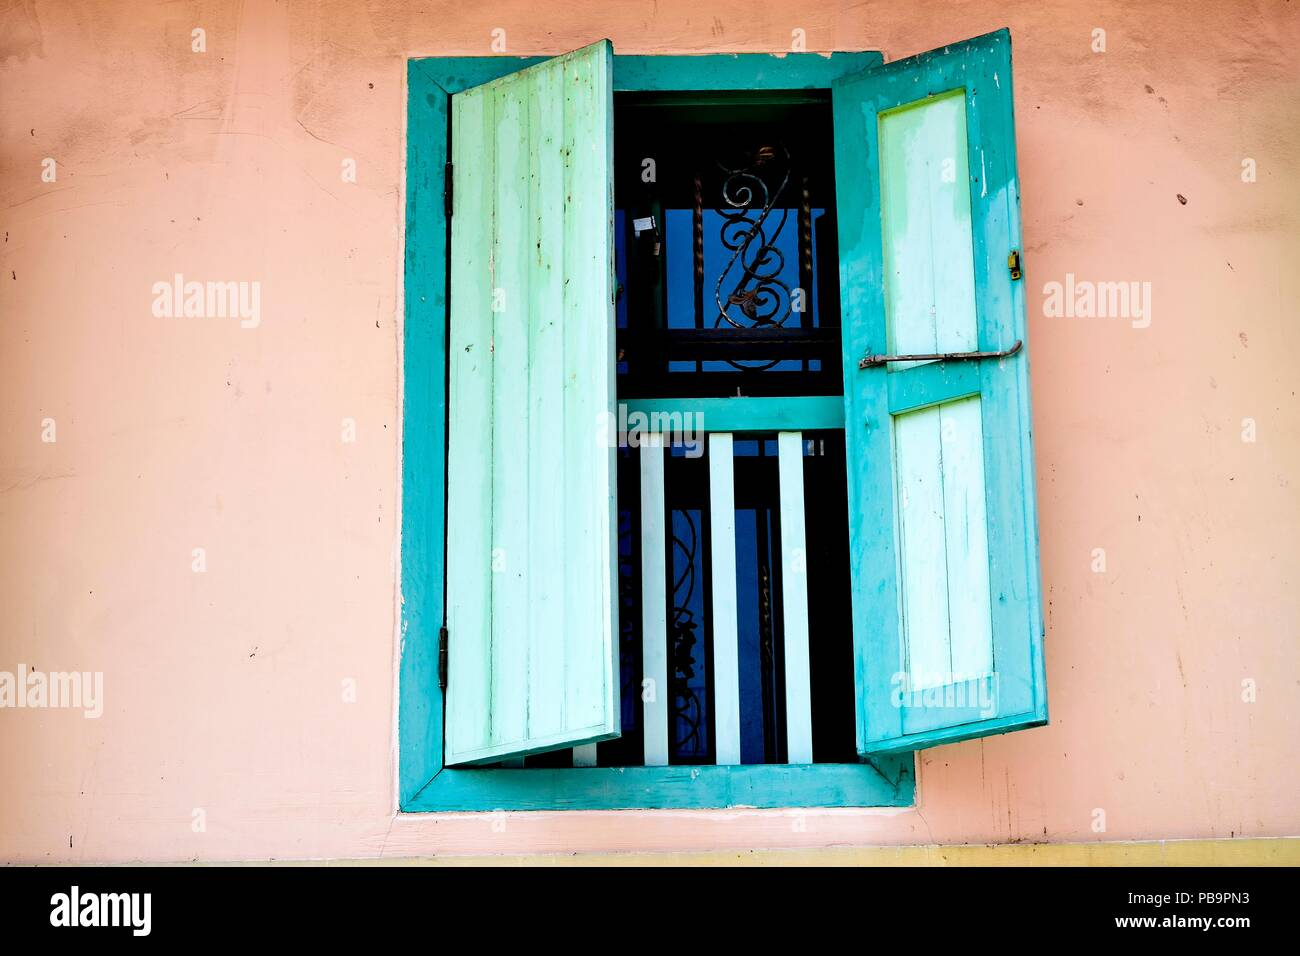 Perspective view of vintage window with open green antique wooden shutters as architectural background with space for copy. Stock Photo